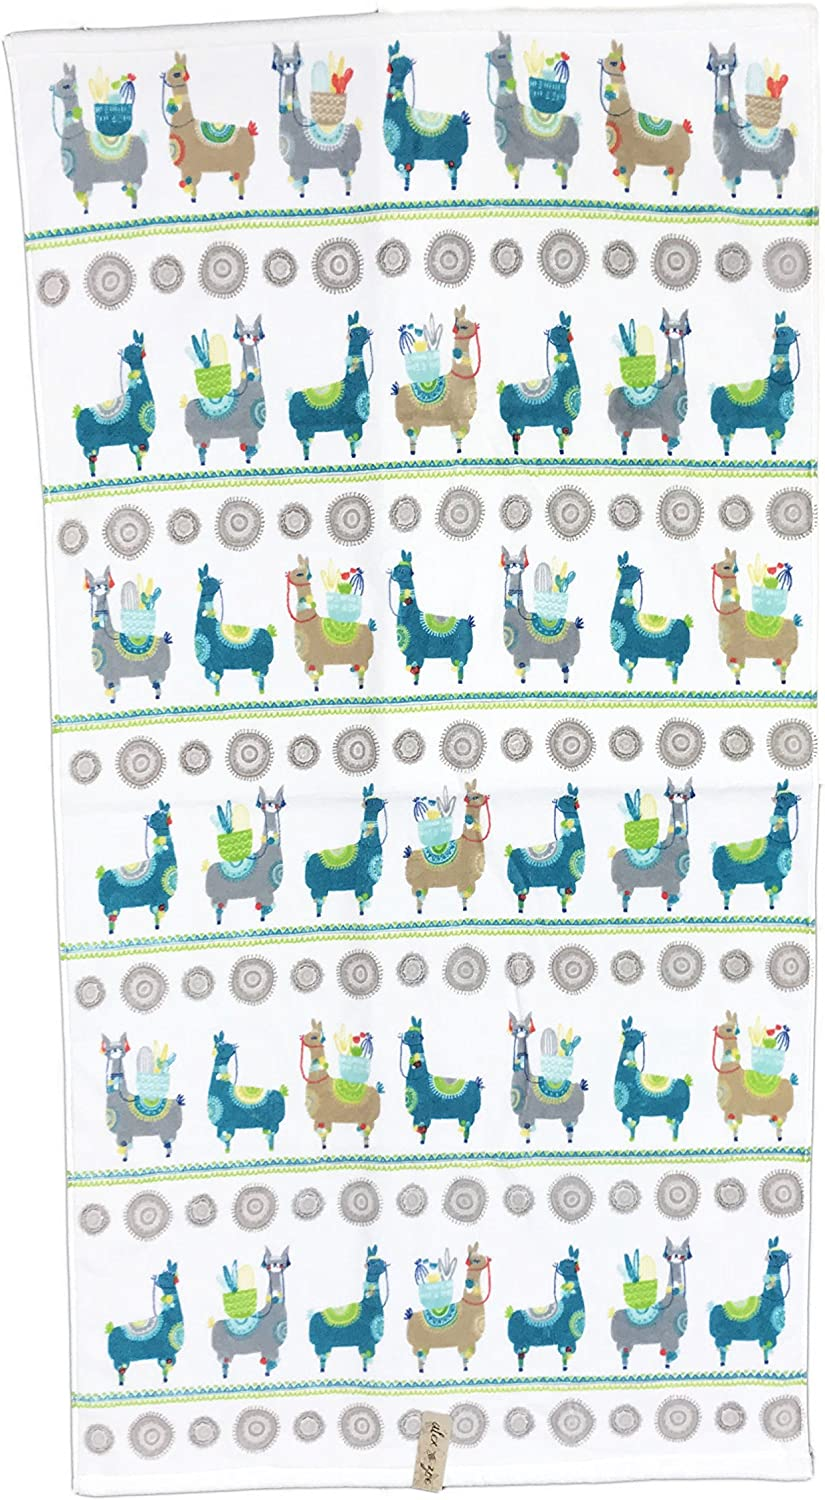 Alex and Zoe Bright 2021new shipping free OFFicial store Decorative Llamas Carrying Desert Whimsical